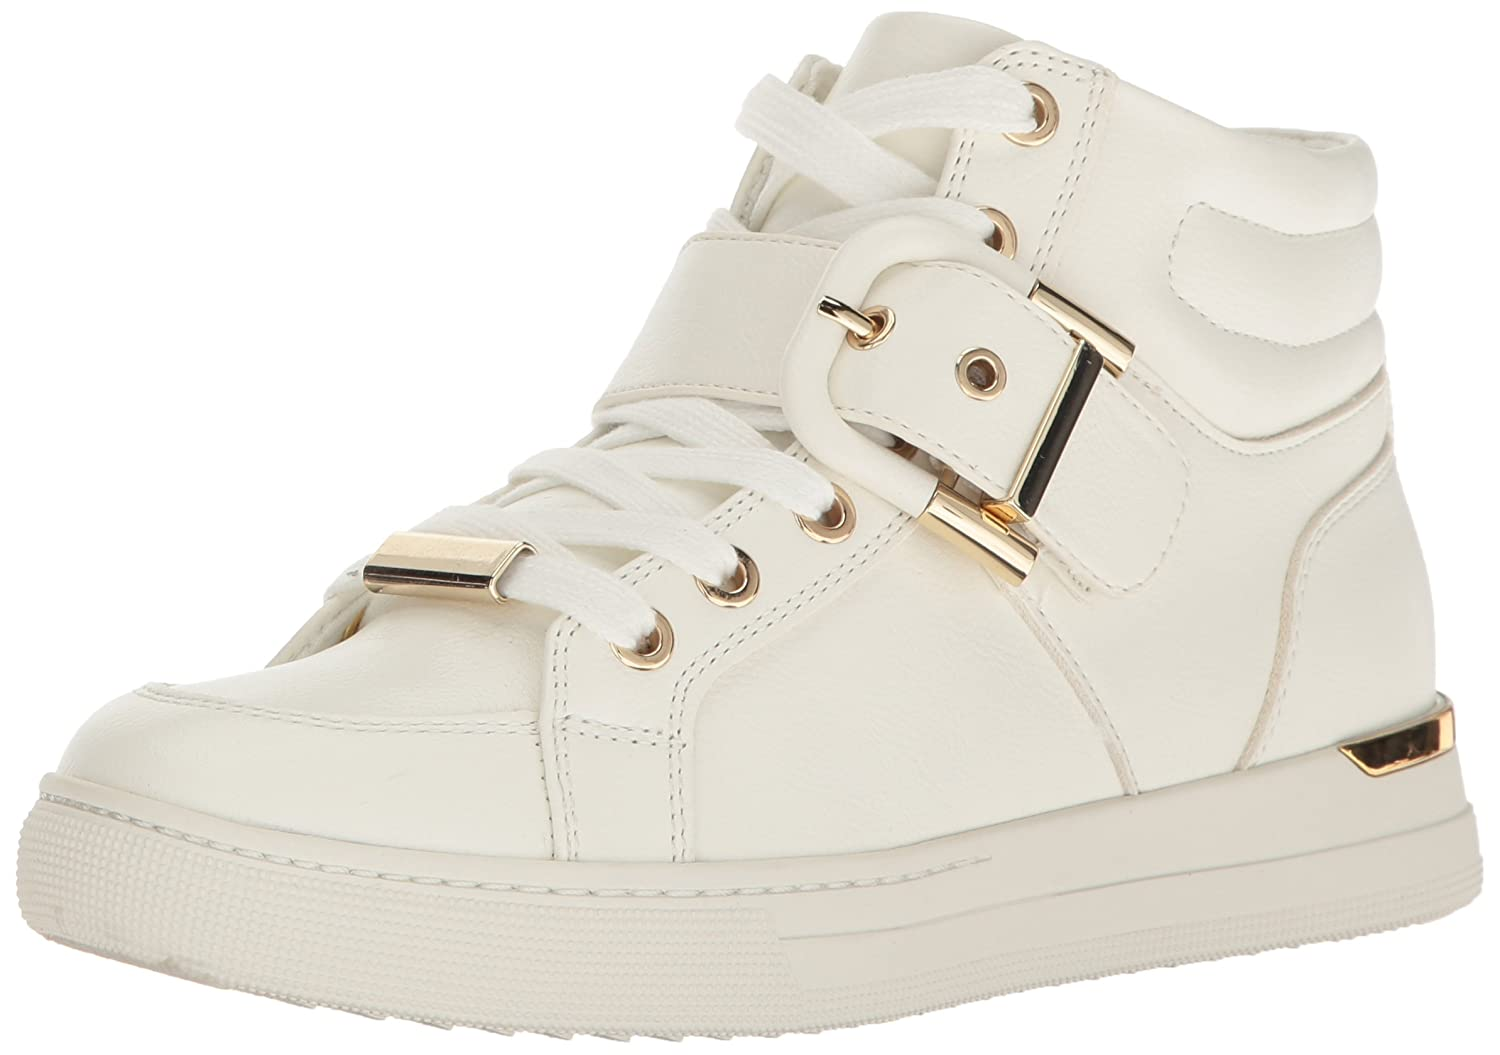 ALDO Women's Annex Fashion Sneaker B01N0RF0AX 7 B(M) US|White